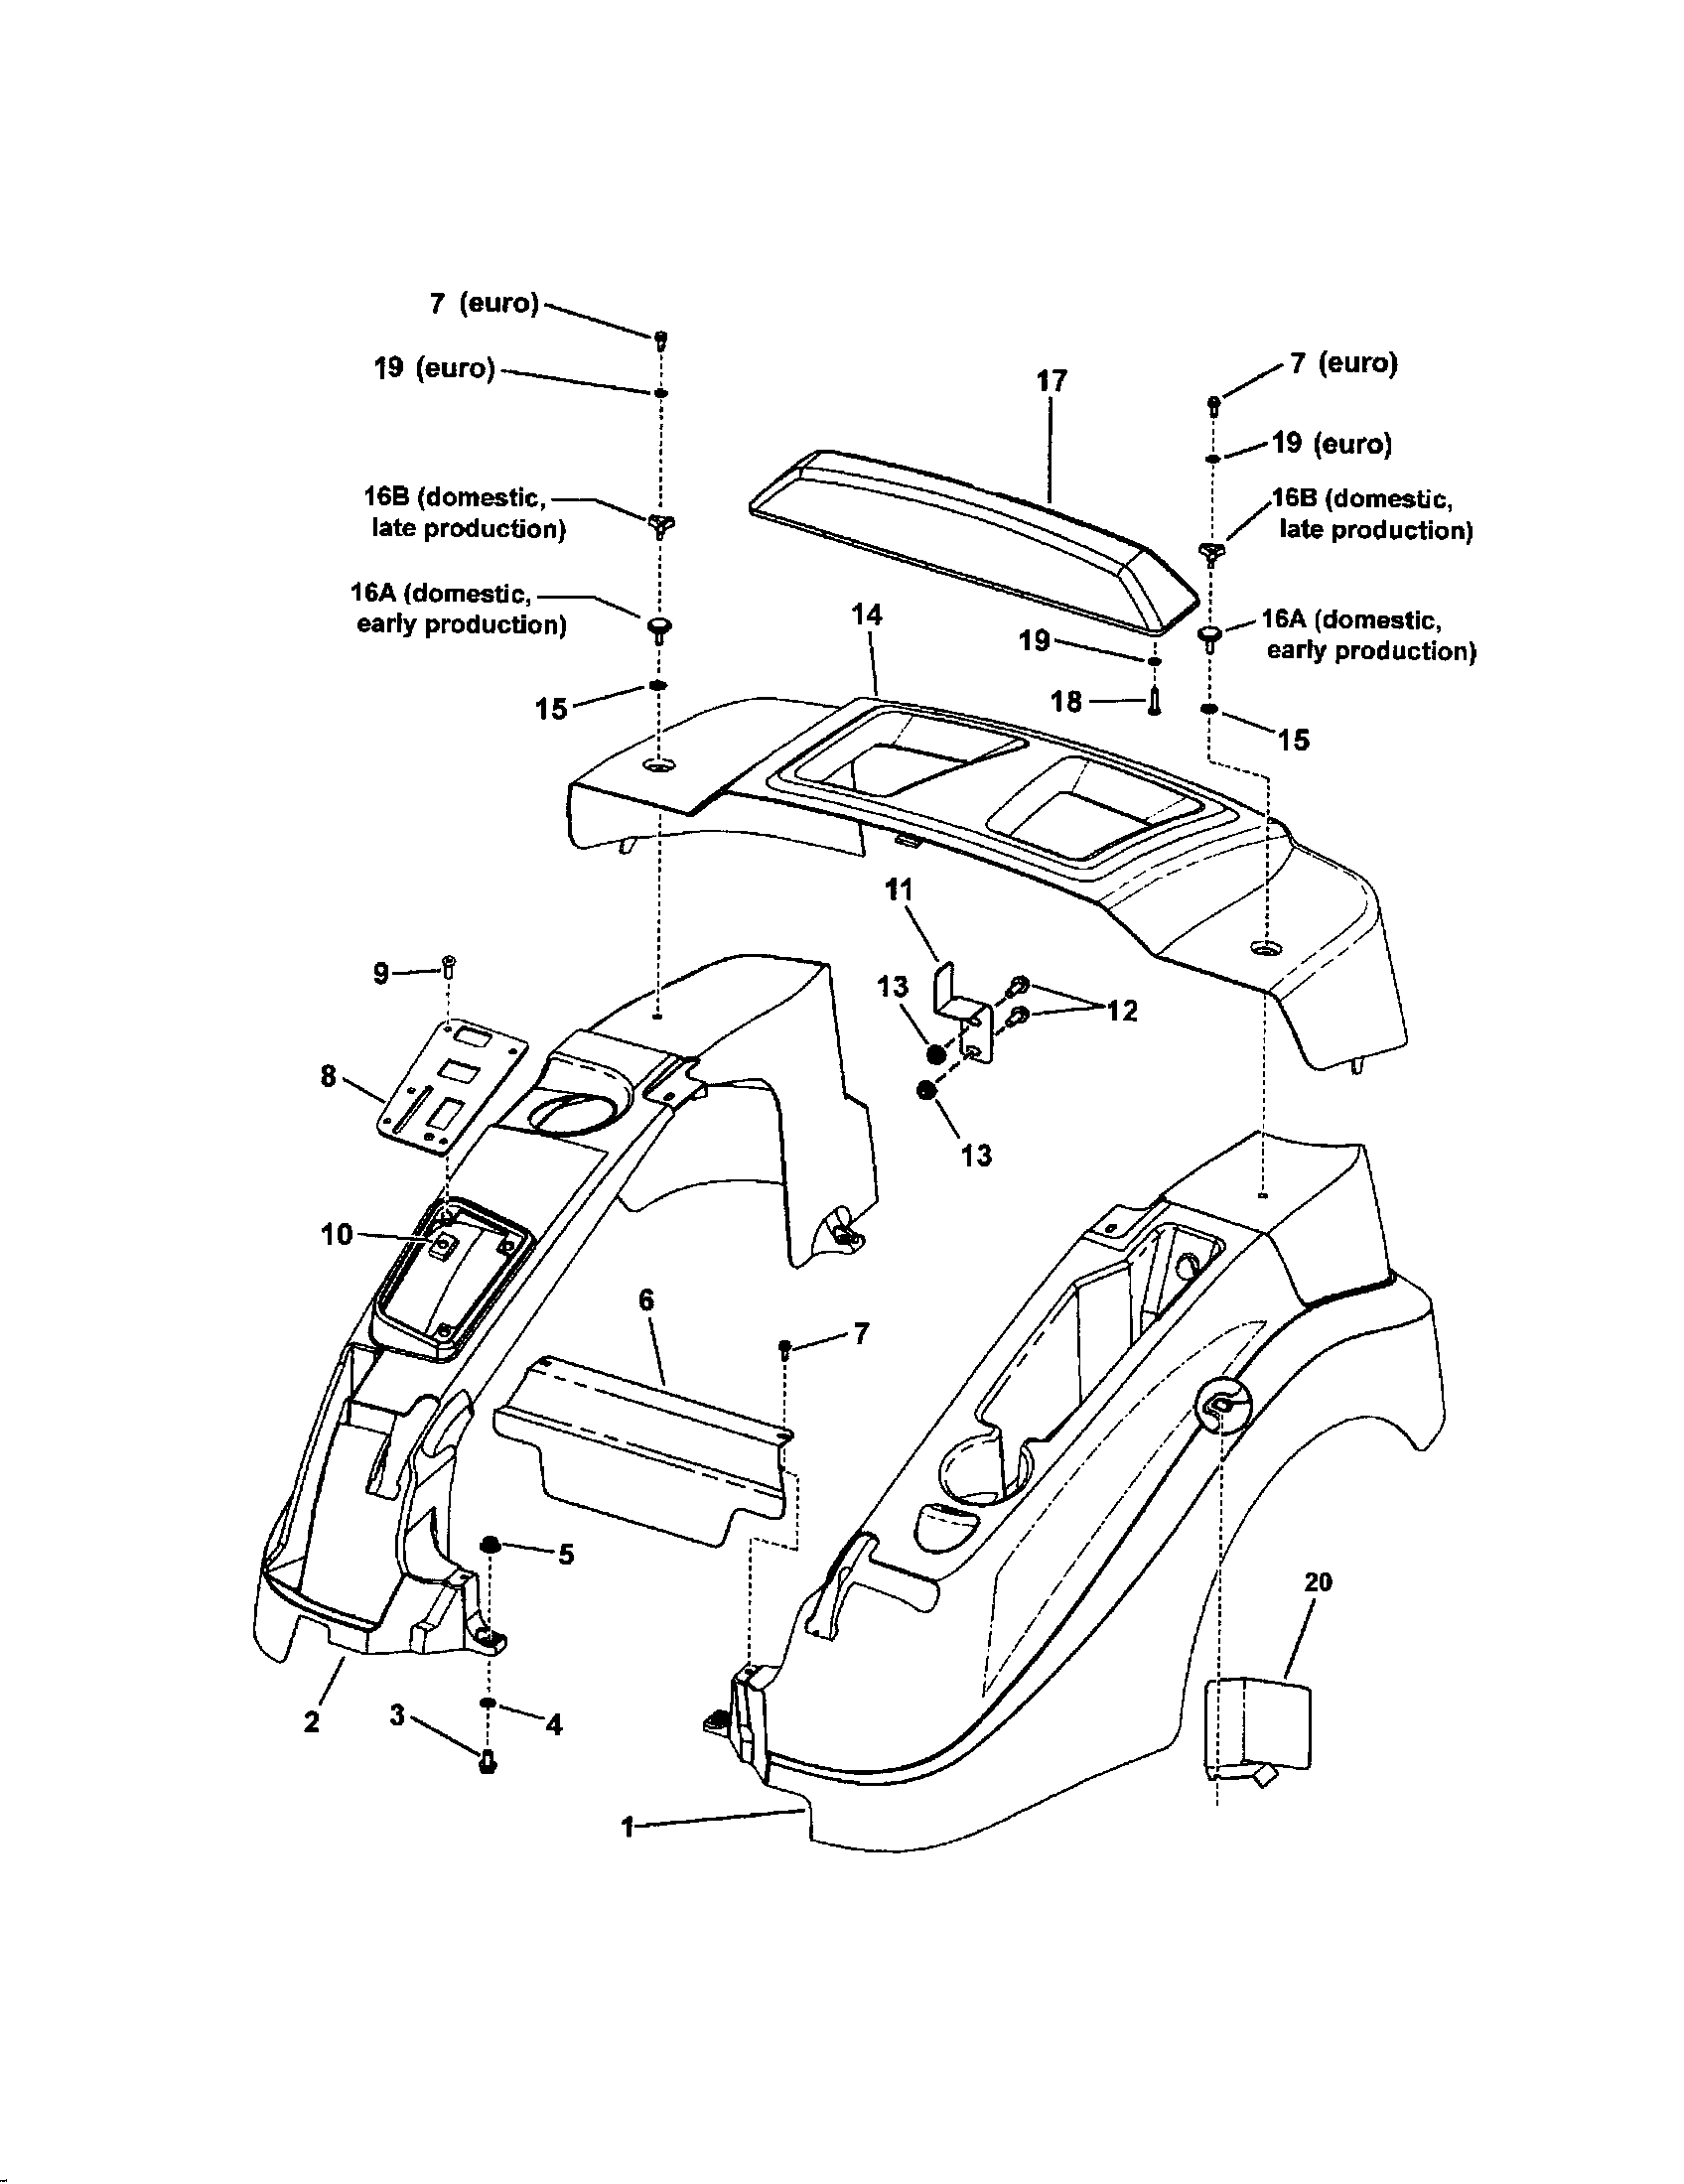 SNAPPER FENDER Diagram & Parts List for Model